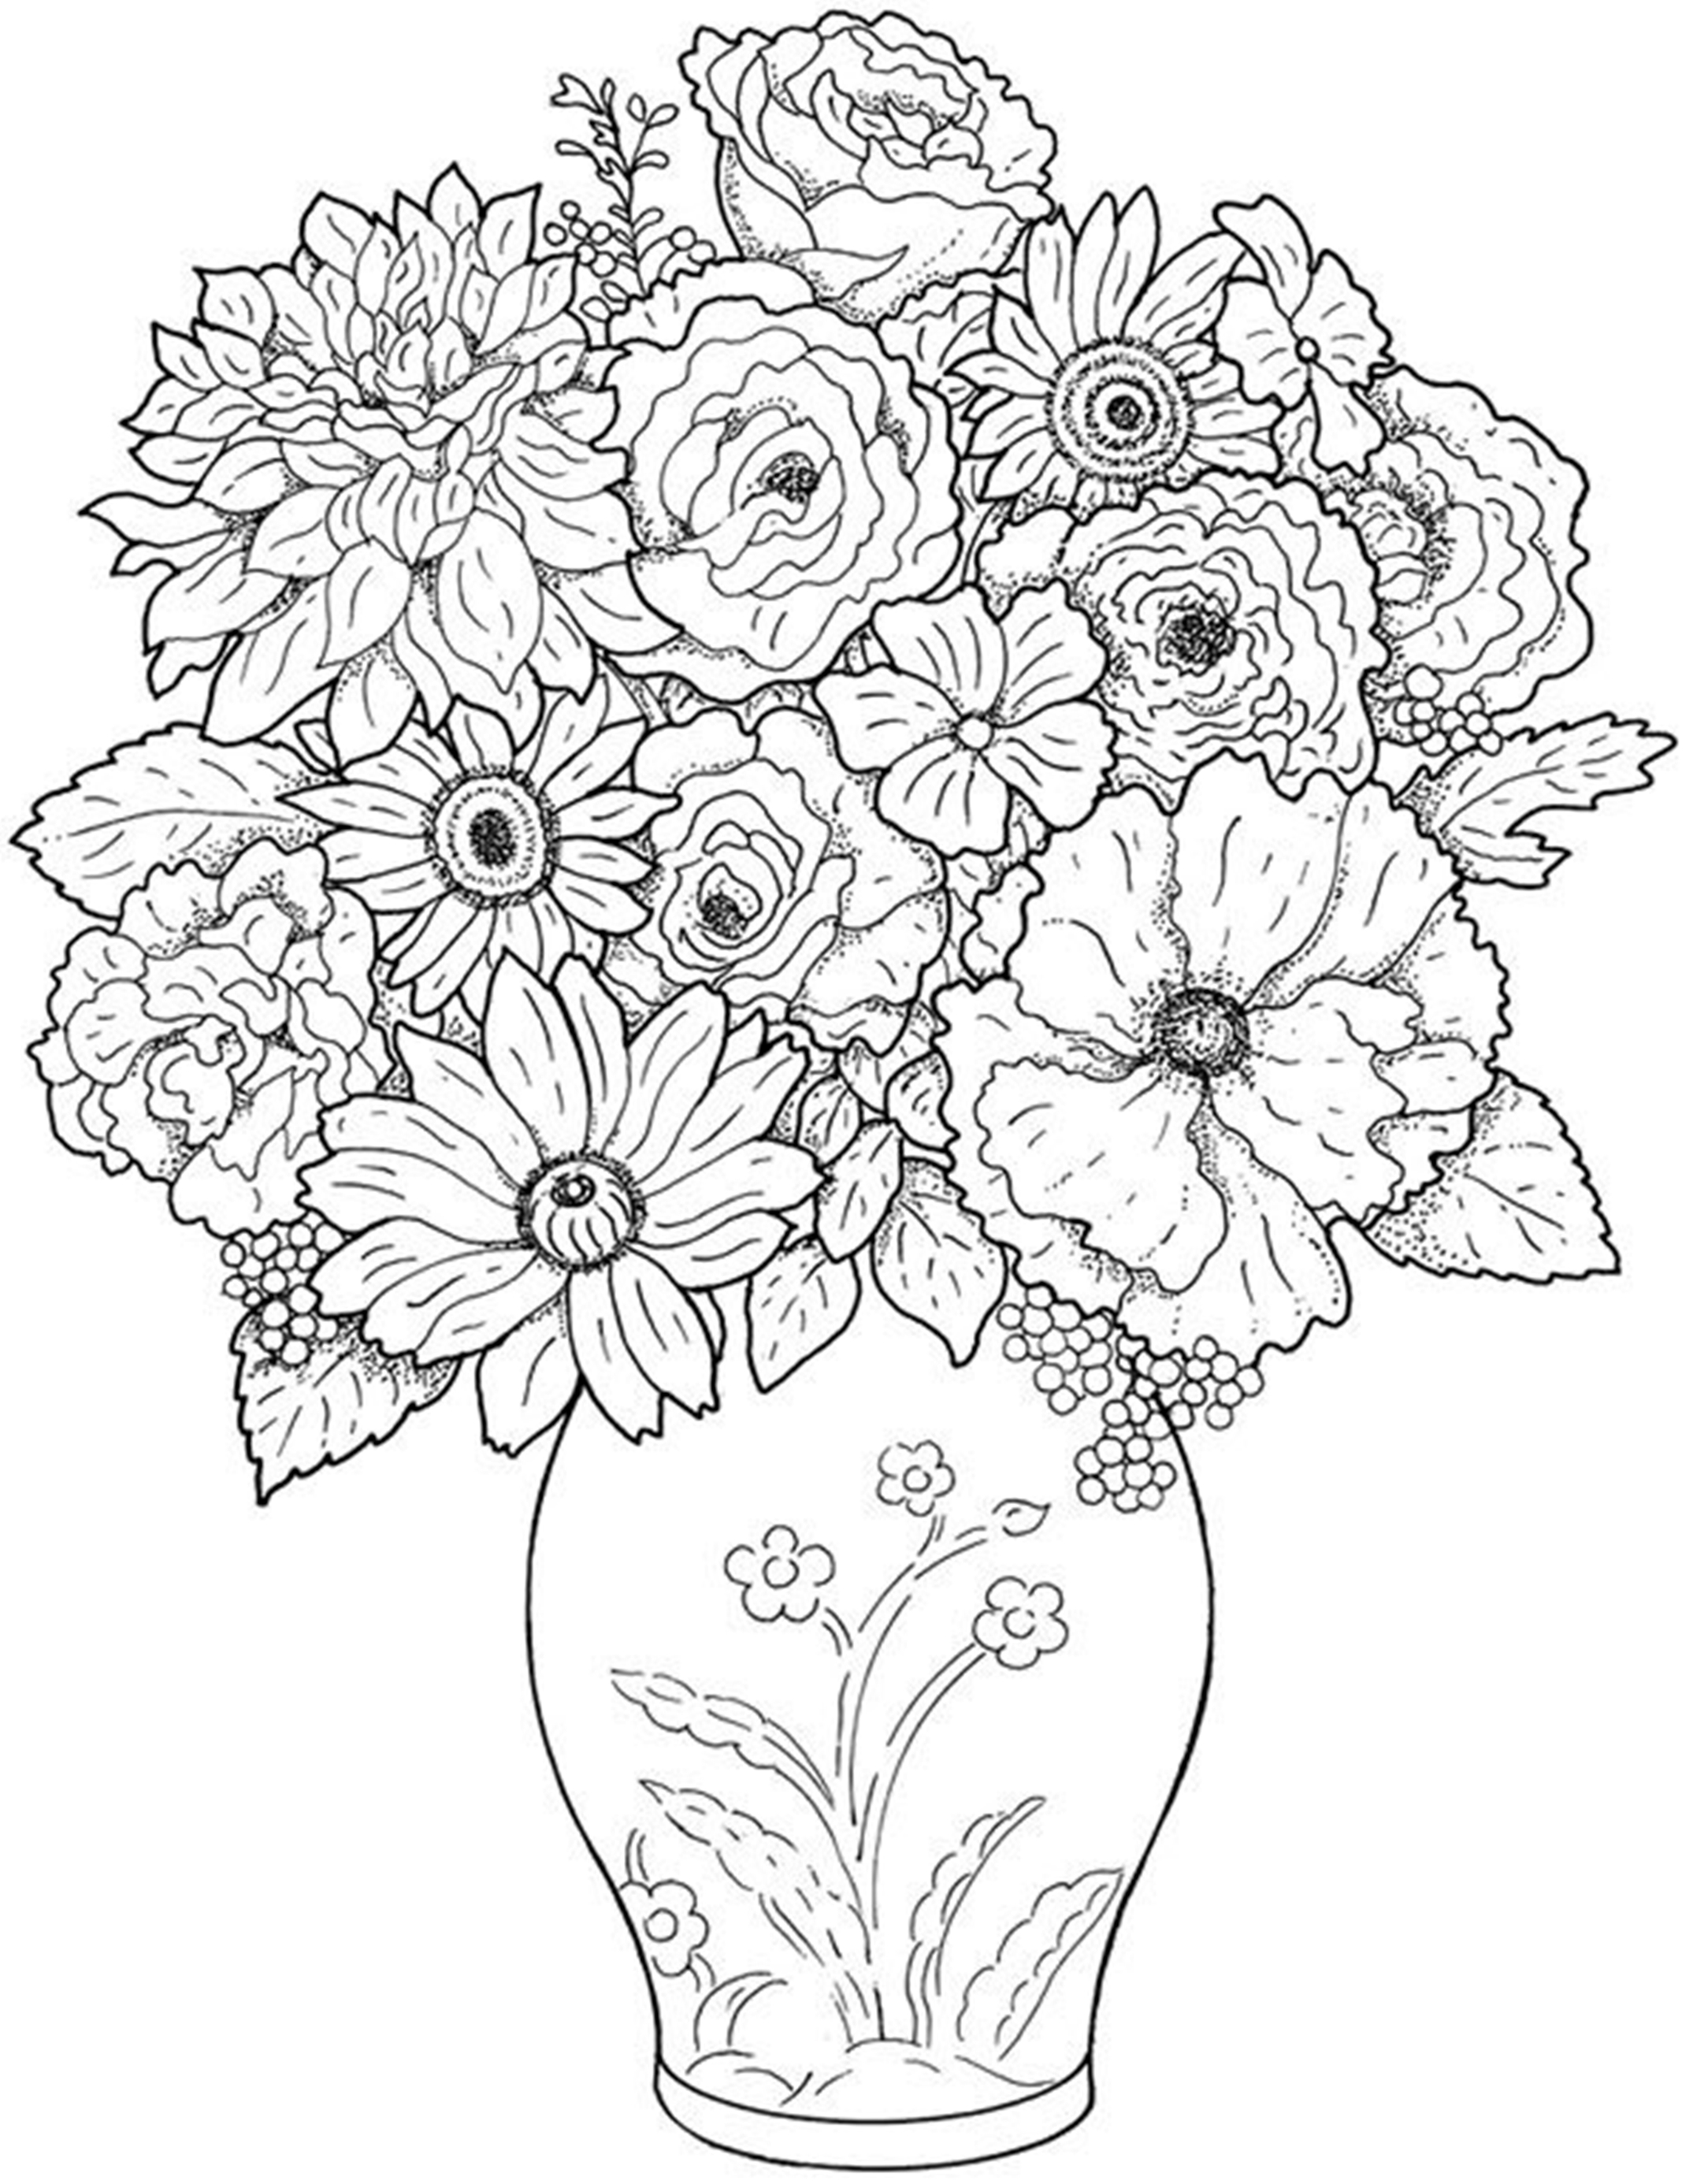 flower vase pictures to color vases of flowers coloring pages to color get coloring pages color to vase flower pictures